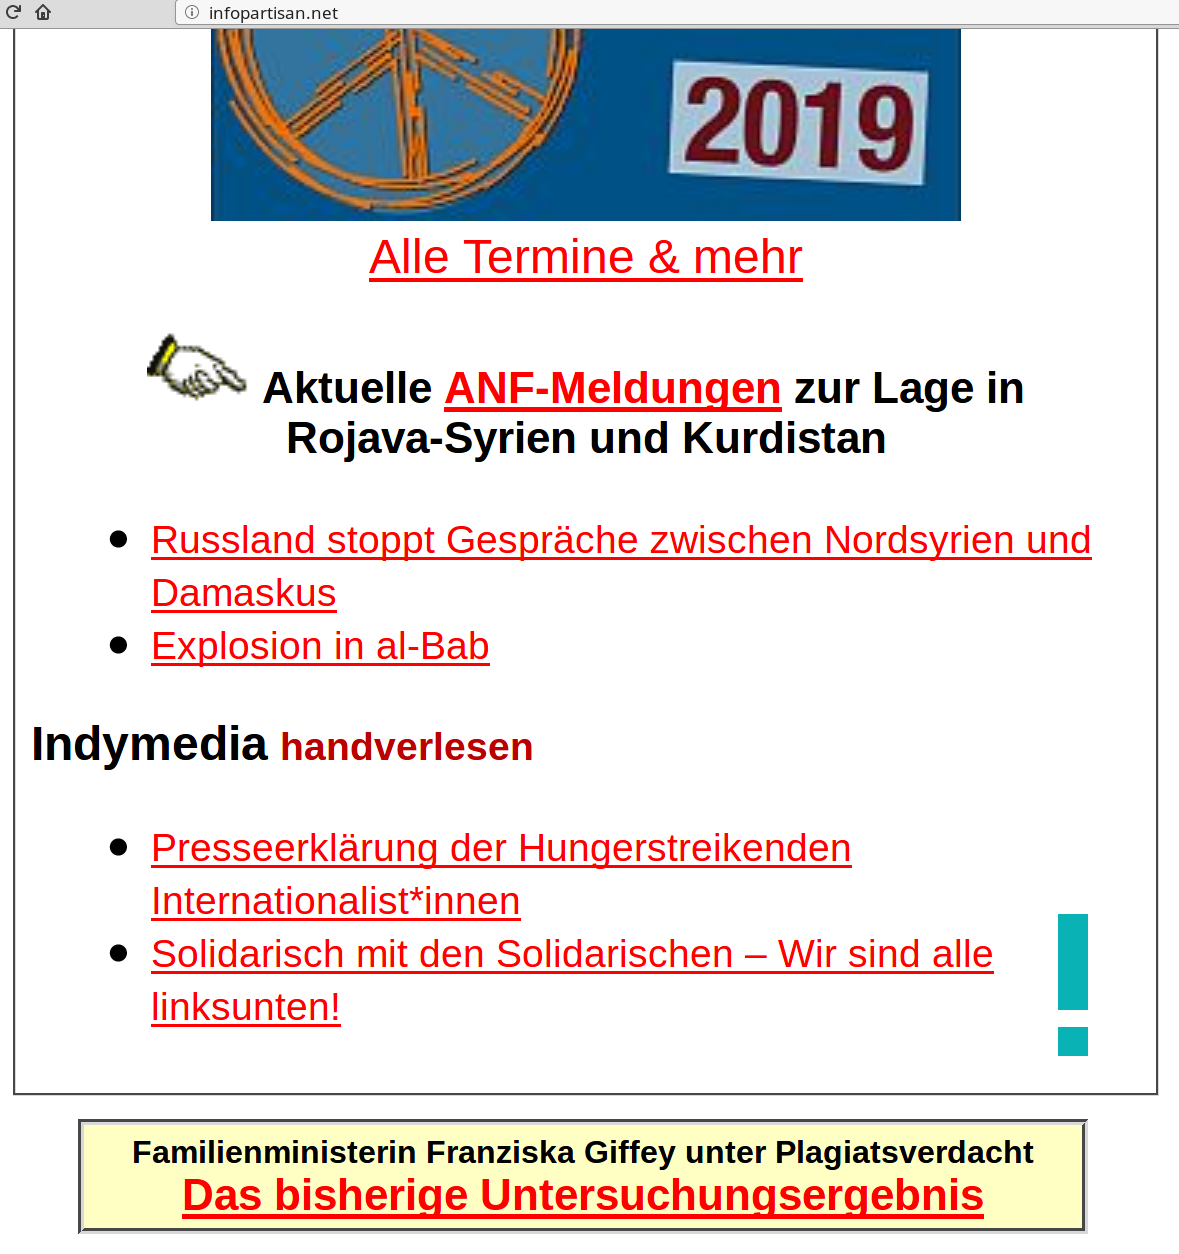 infopartisan.net vom 12.04.2019